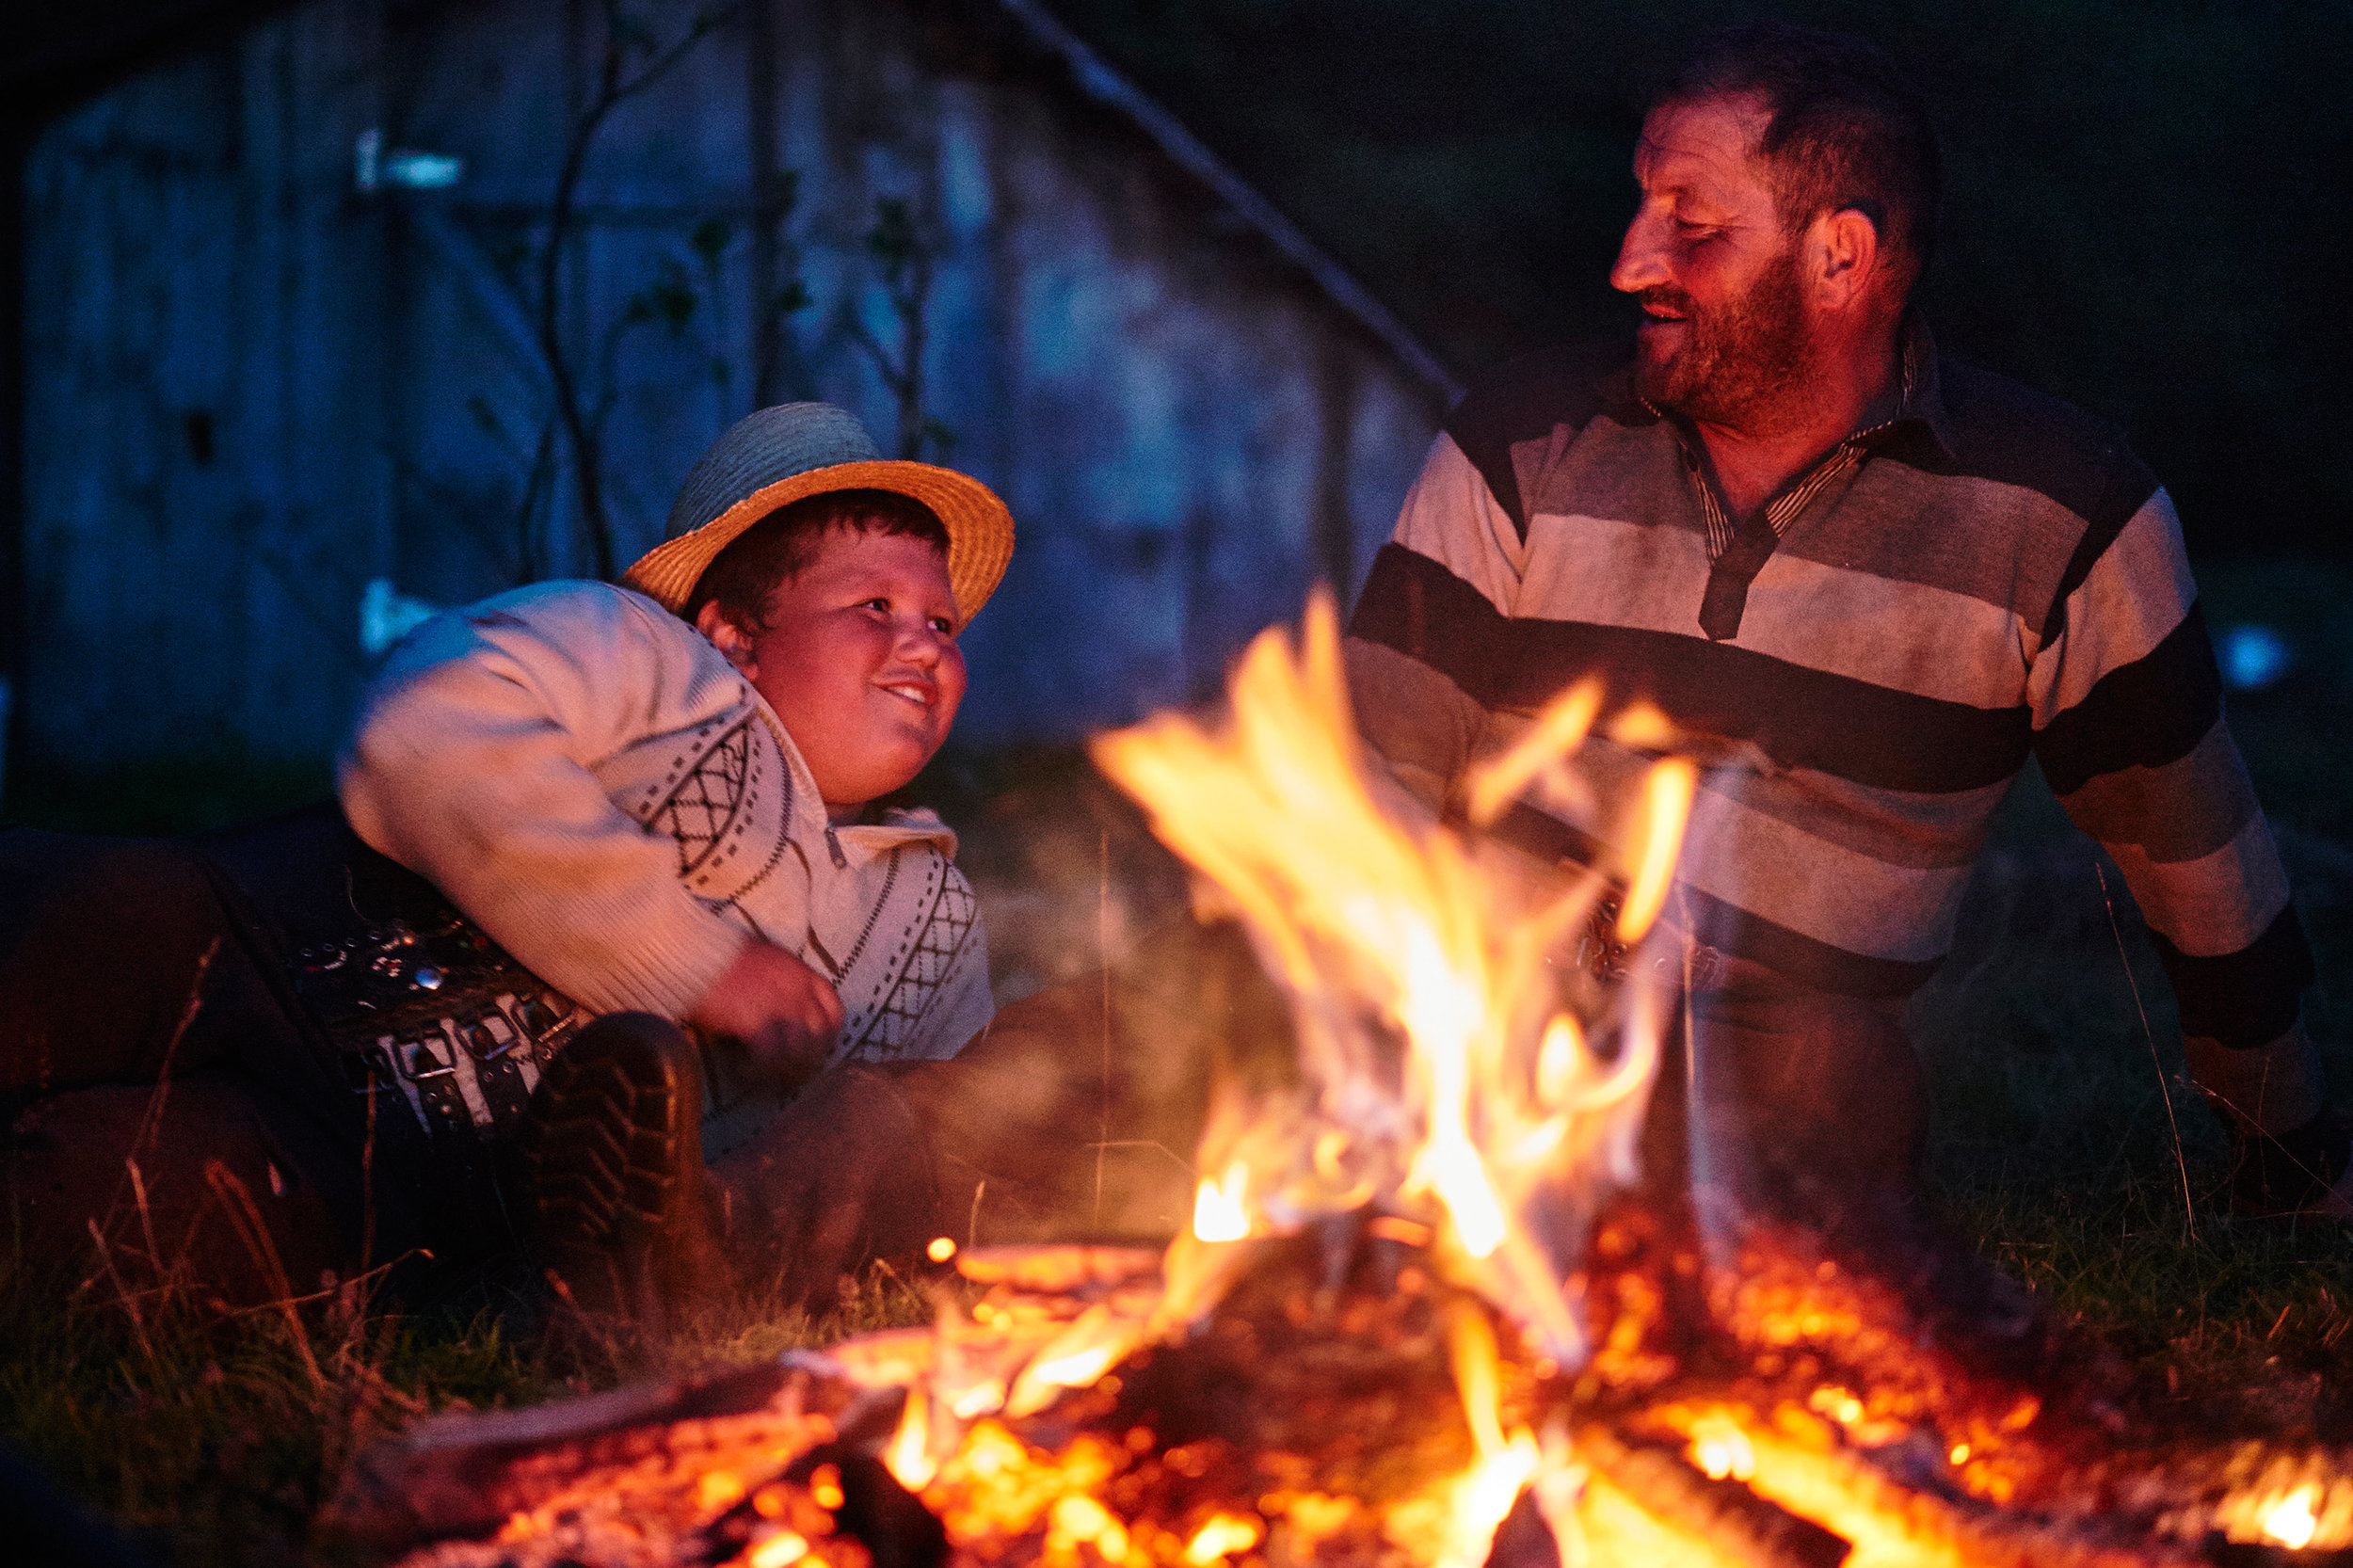 Maramures-Romania-boy-and-his-uncle-by-the-fire